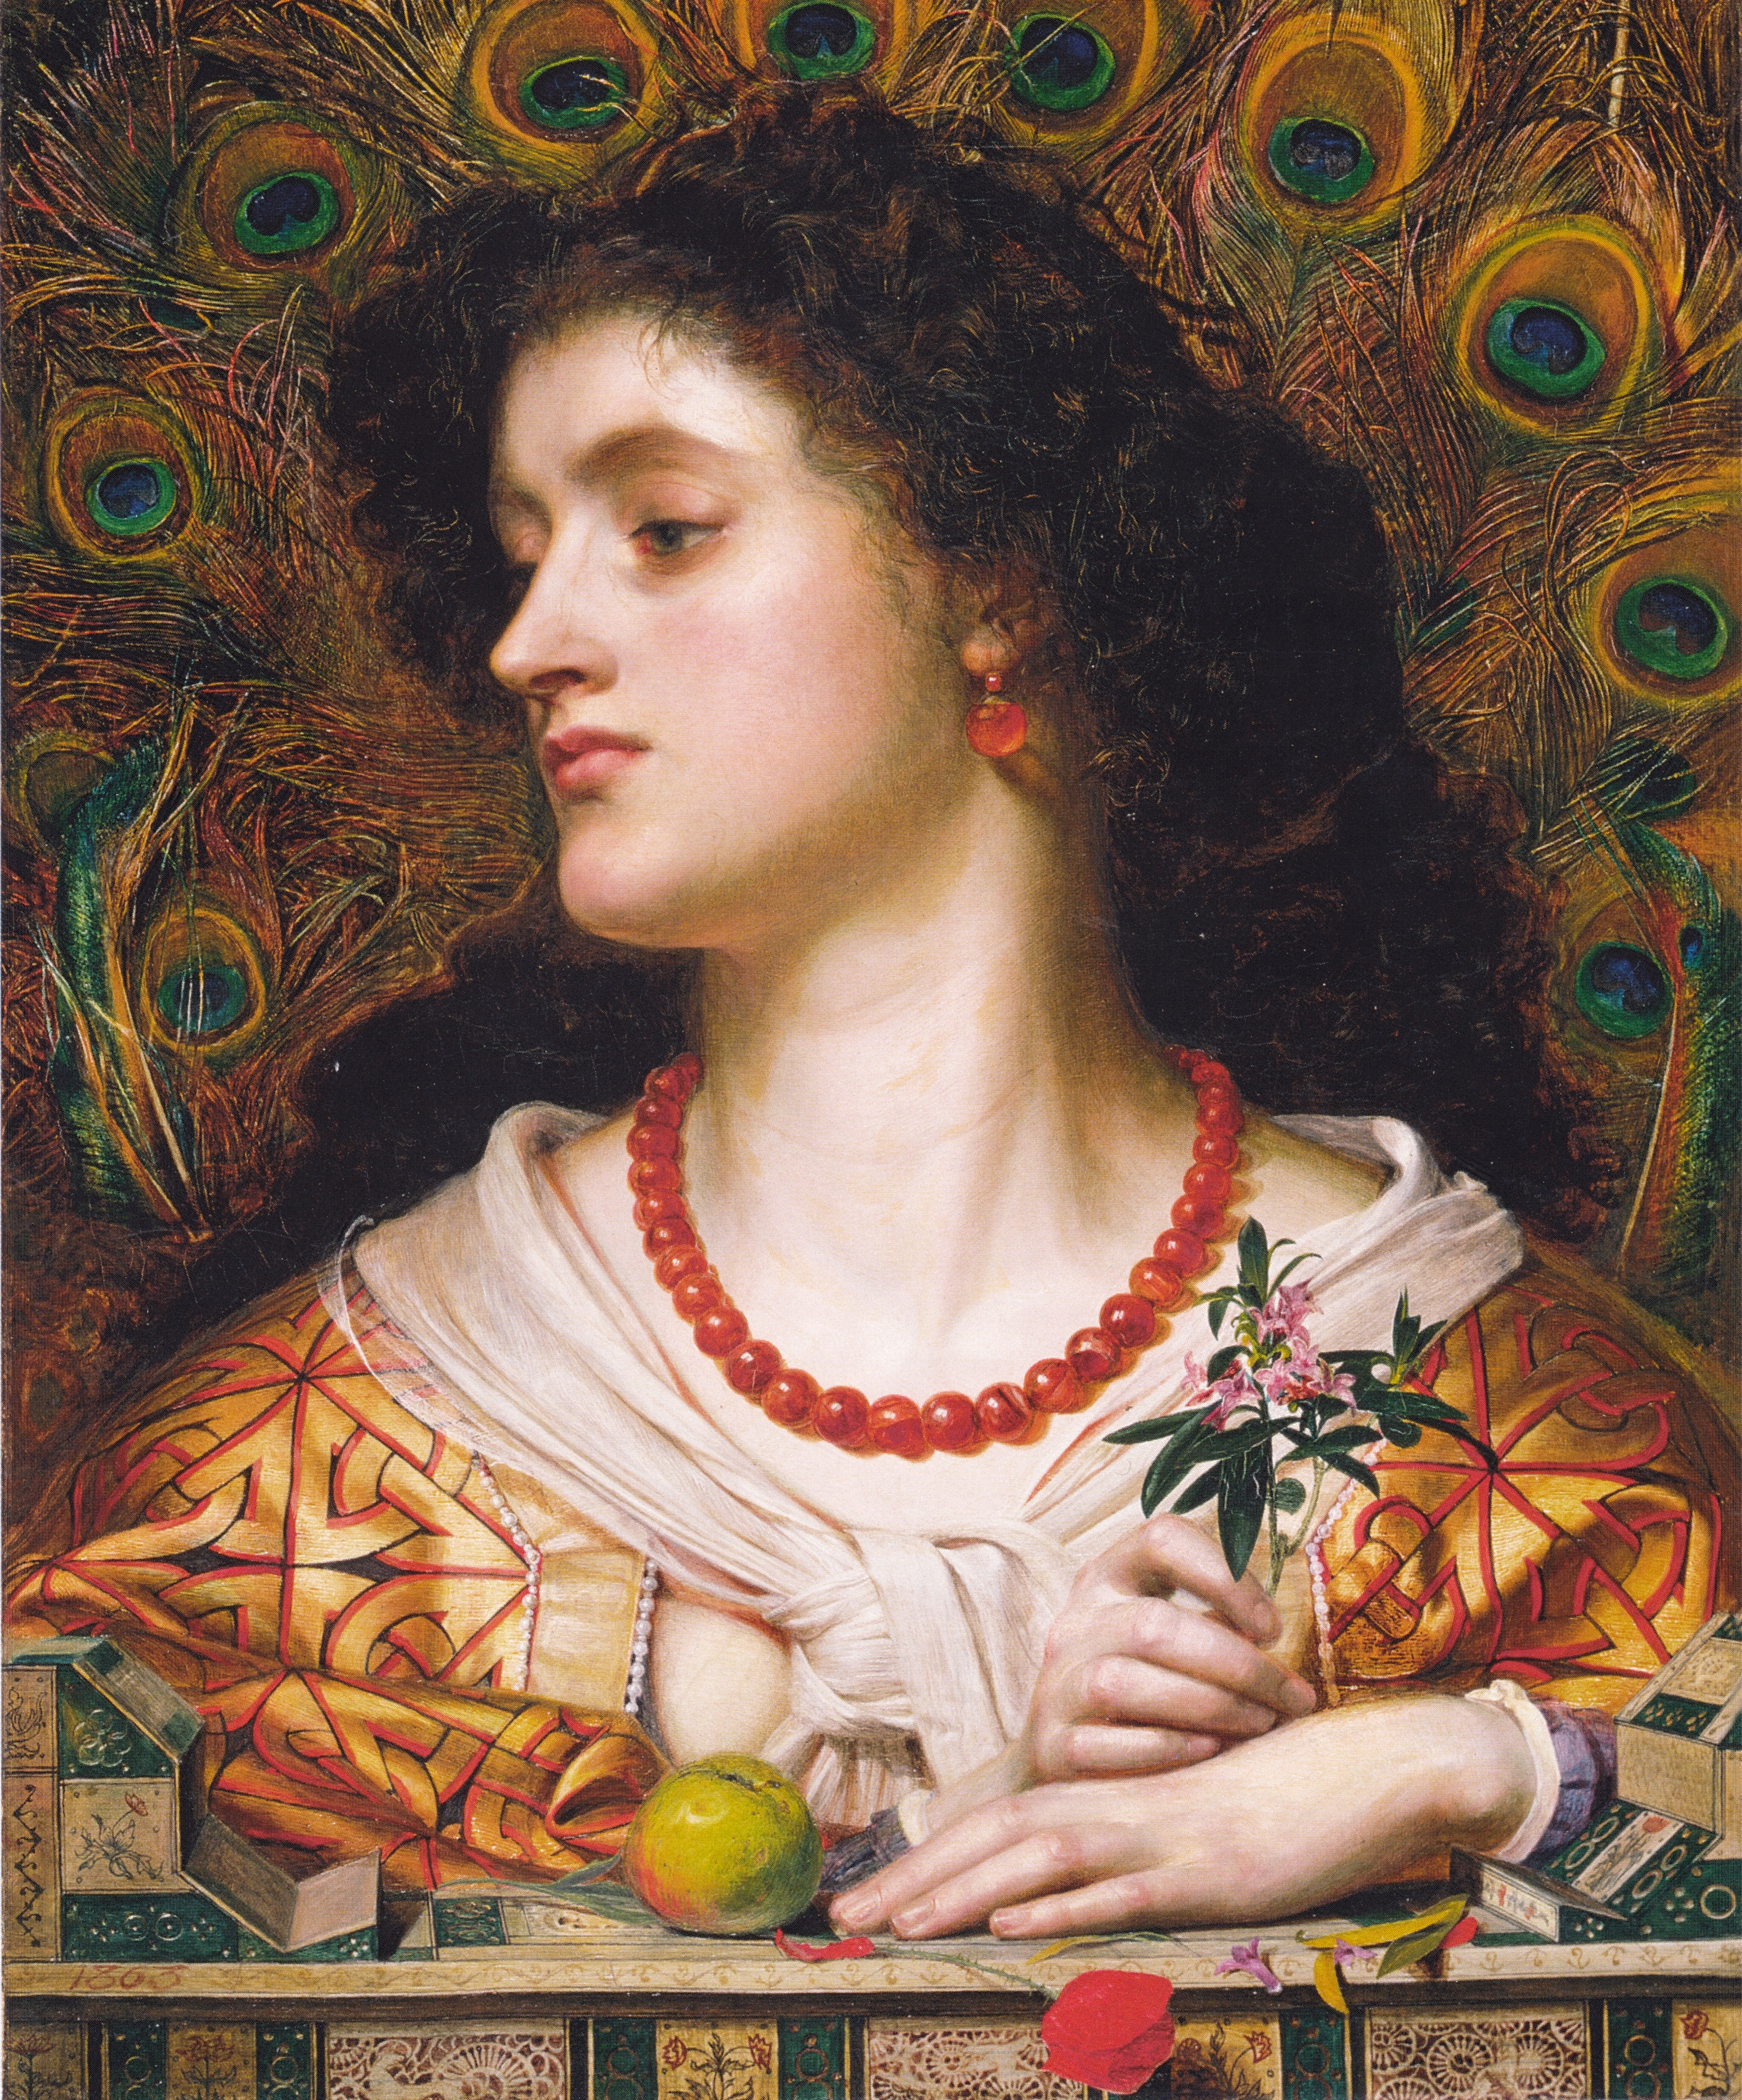 An image of Vivien by Frederick Sandys.